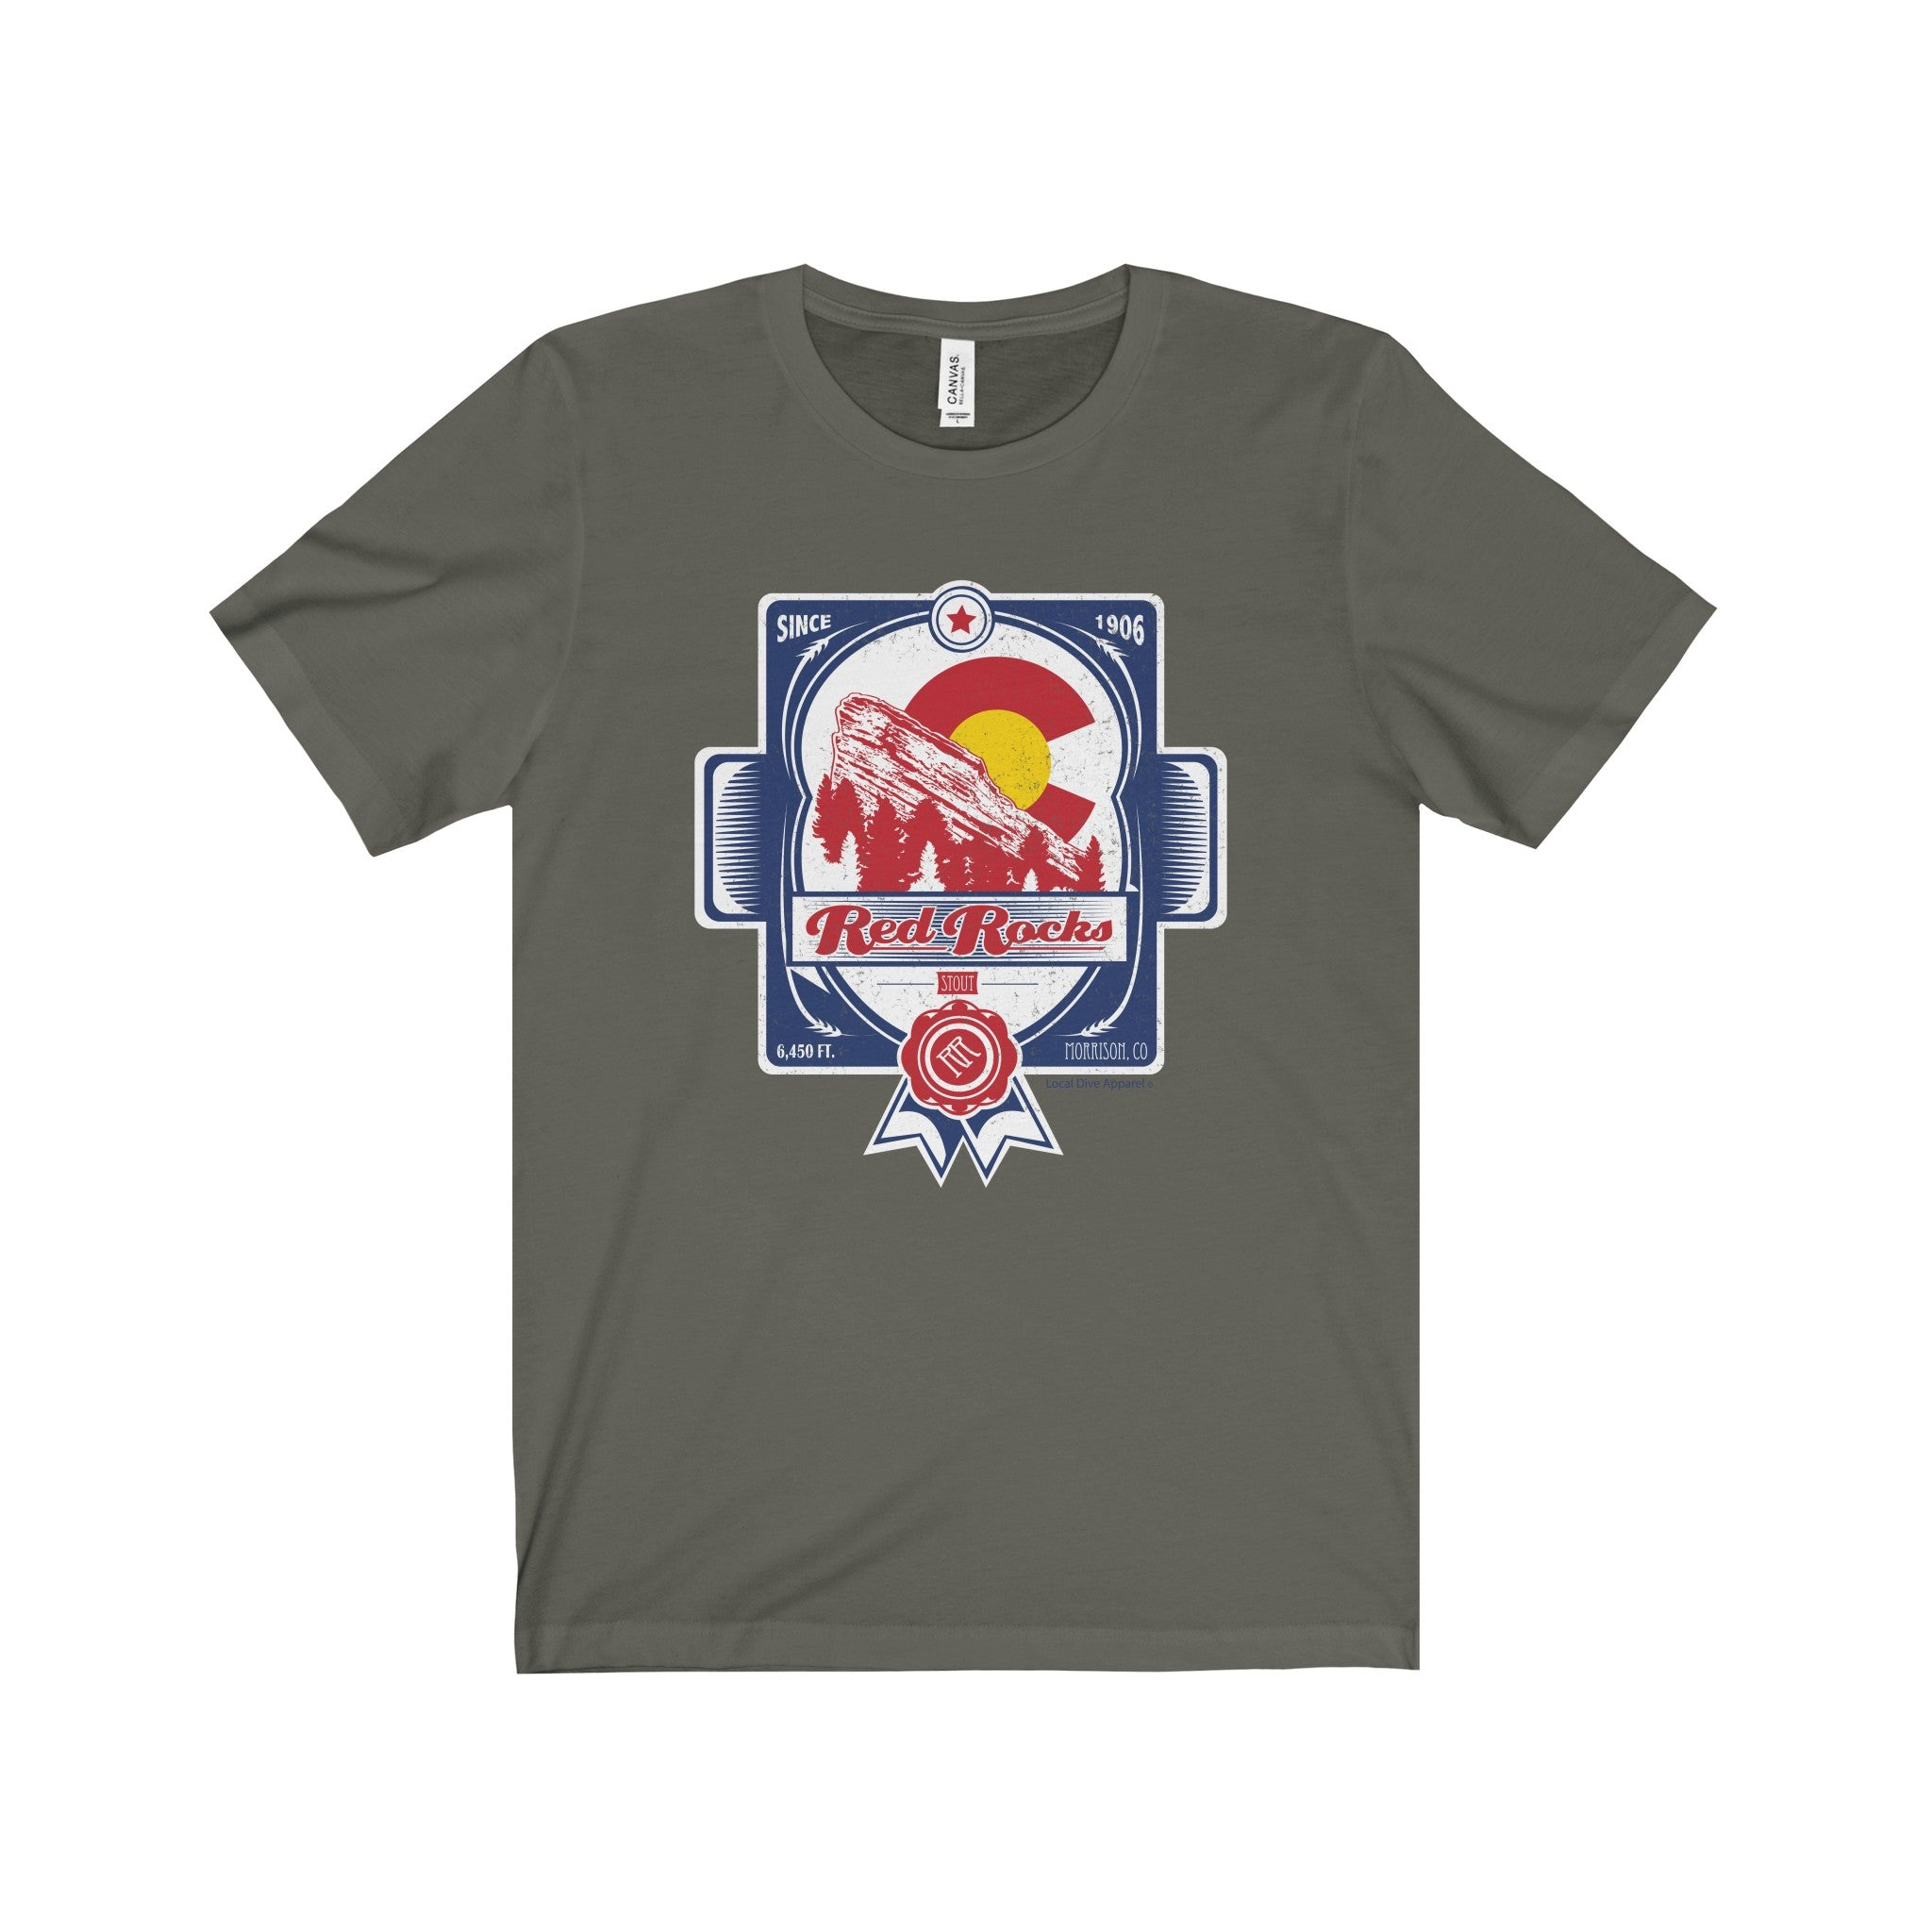 Red Rocks Beer label - T-Shirt